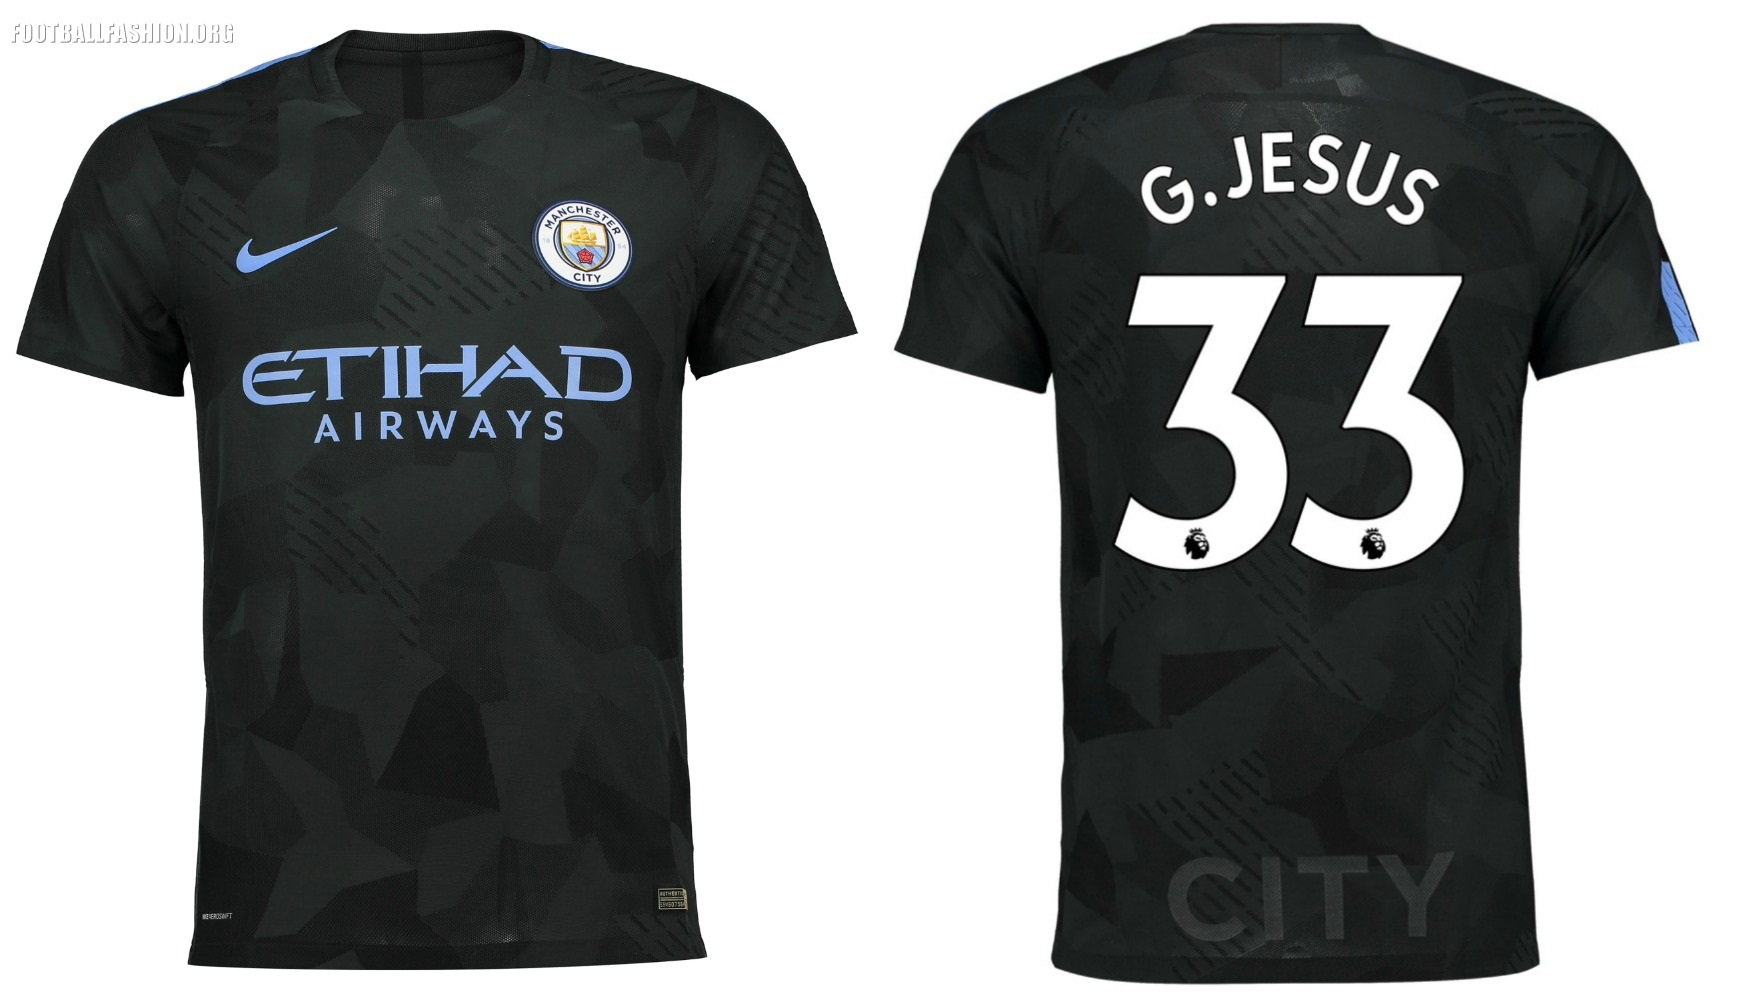 premium selection 0aa35 8f1a2 Manchester City 2017/18 Nike